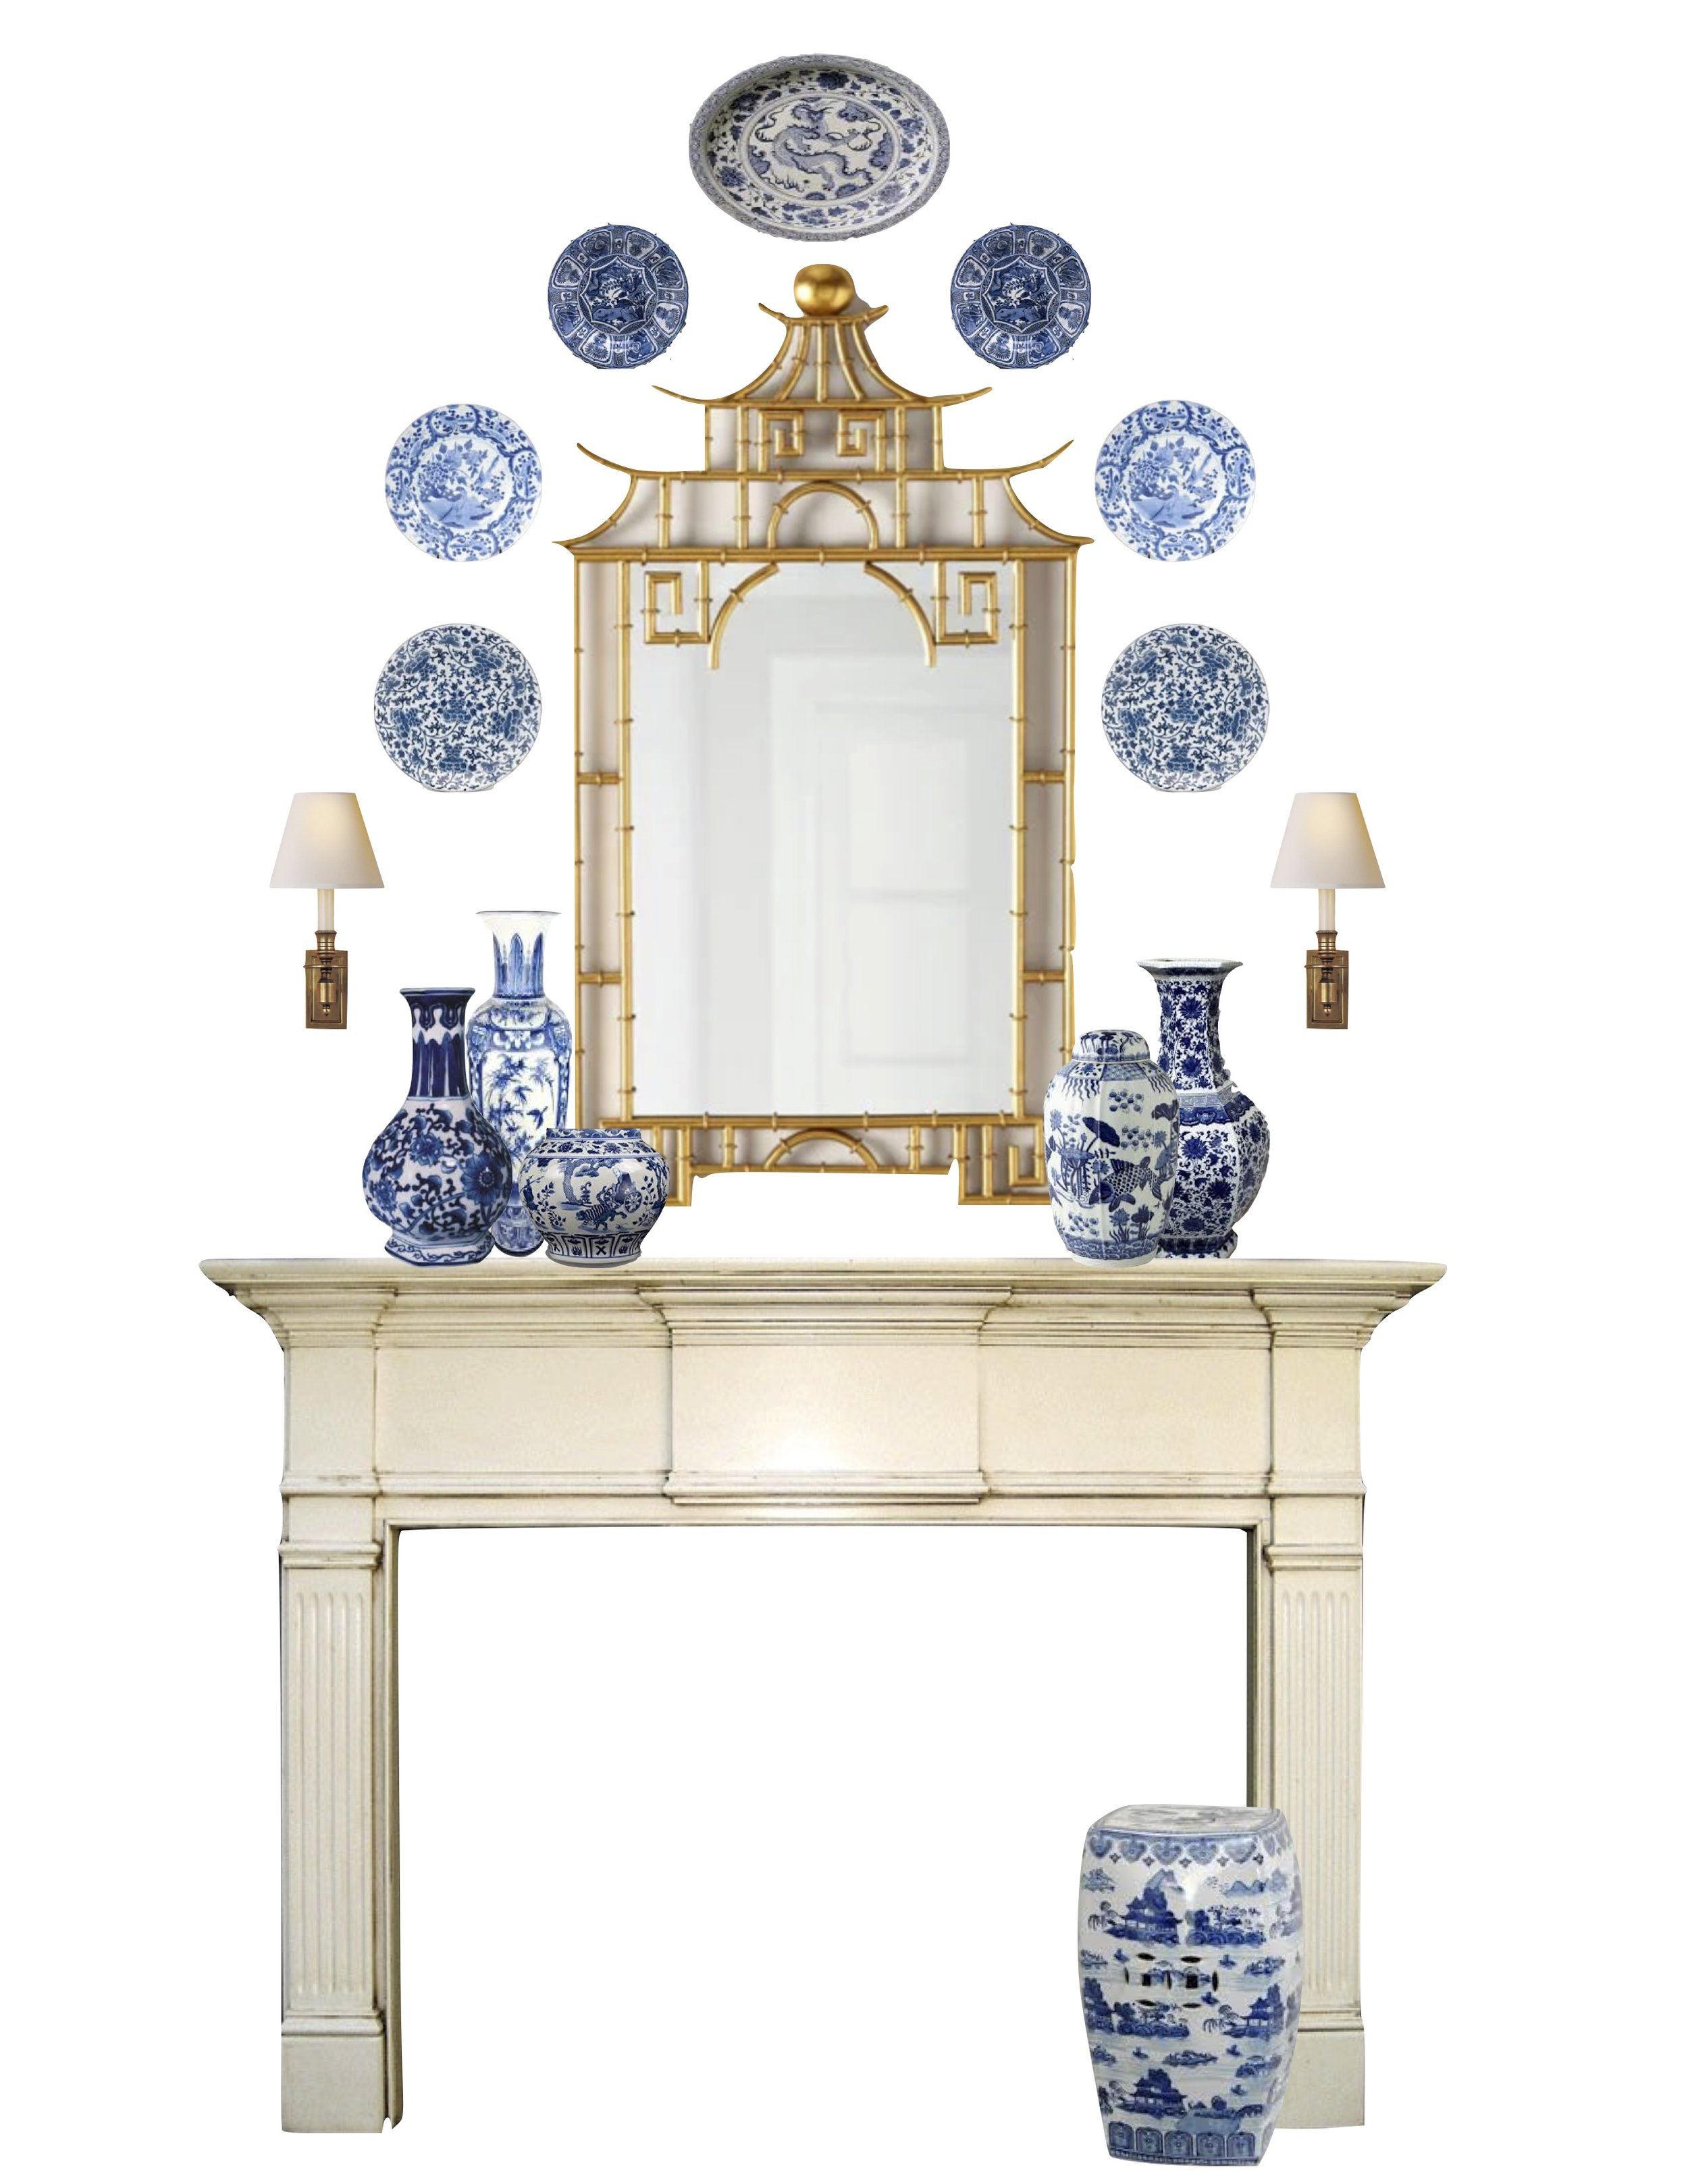 Sconces   |   Mirror   |   Garden Stool   |   Blue Porcelain    Vase